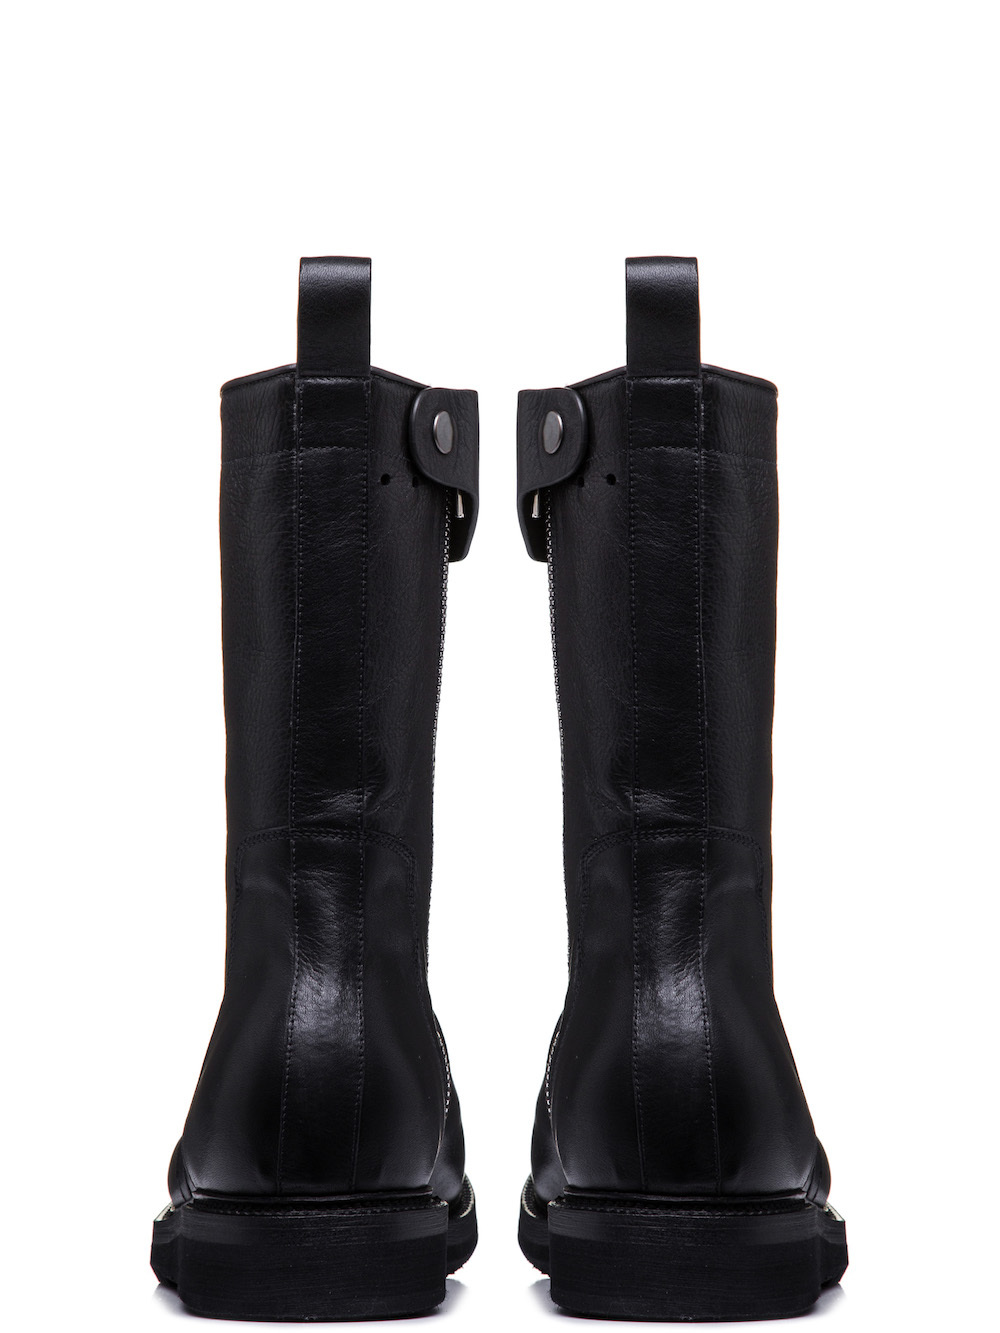 RICK OWENS CREEPER BOOTS WITH CREEPER SOLE IN BLACK CALF LEATHER